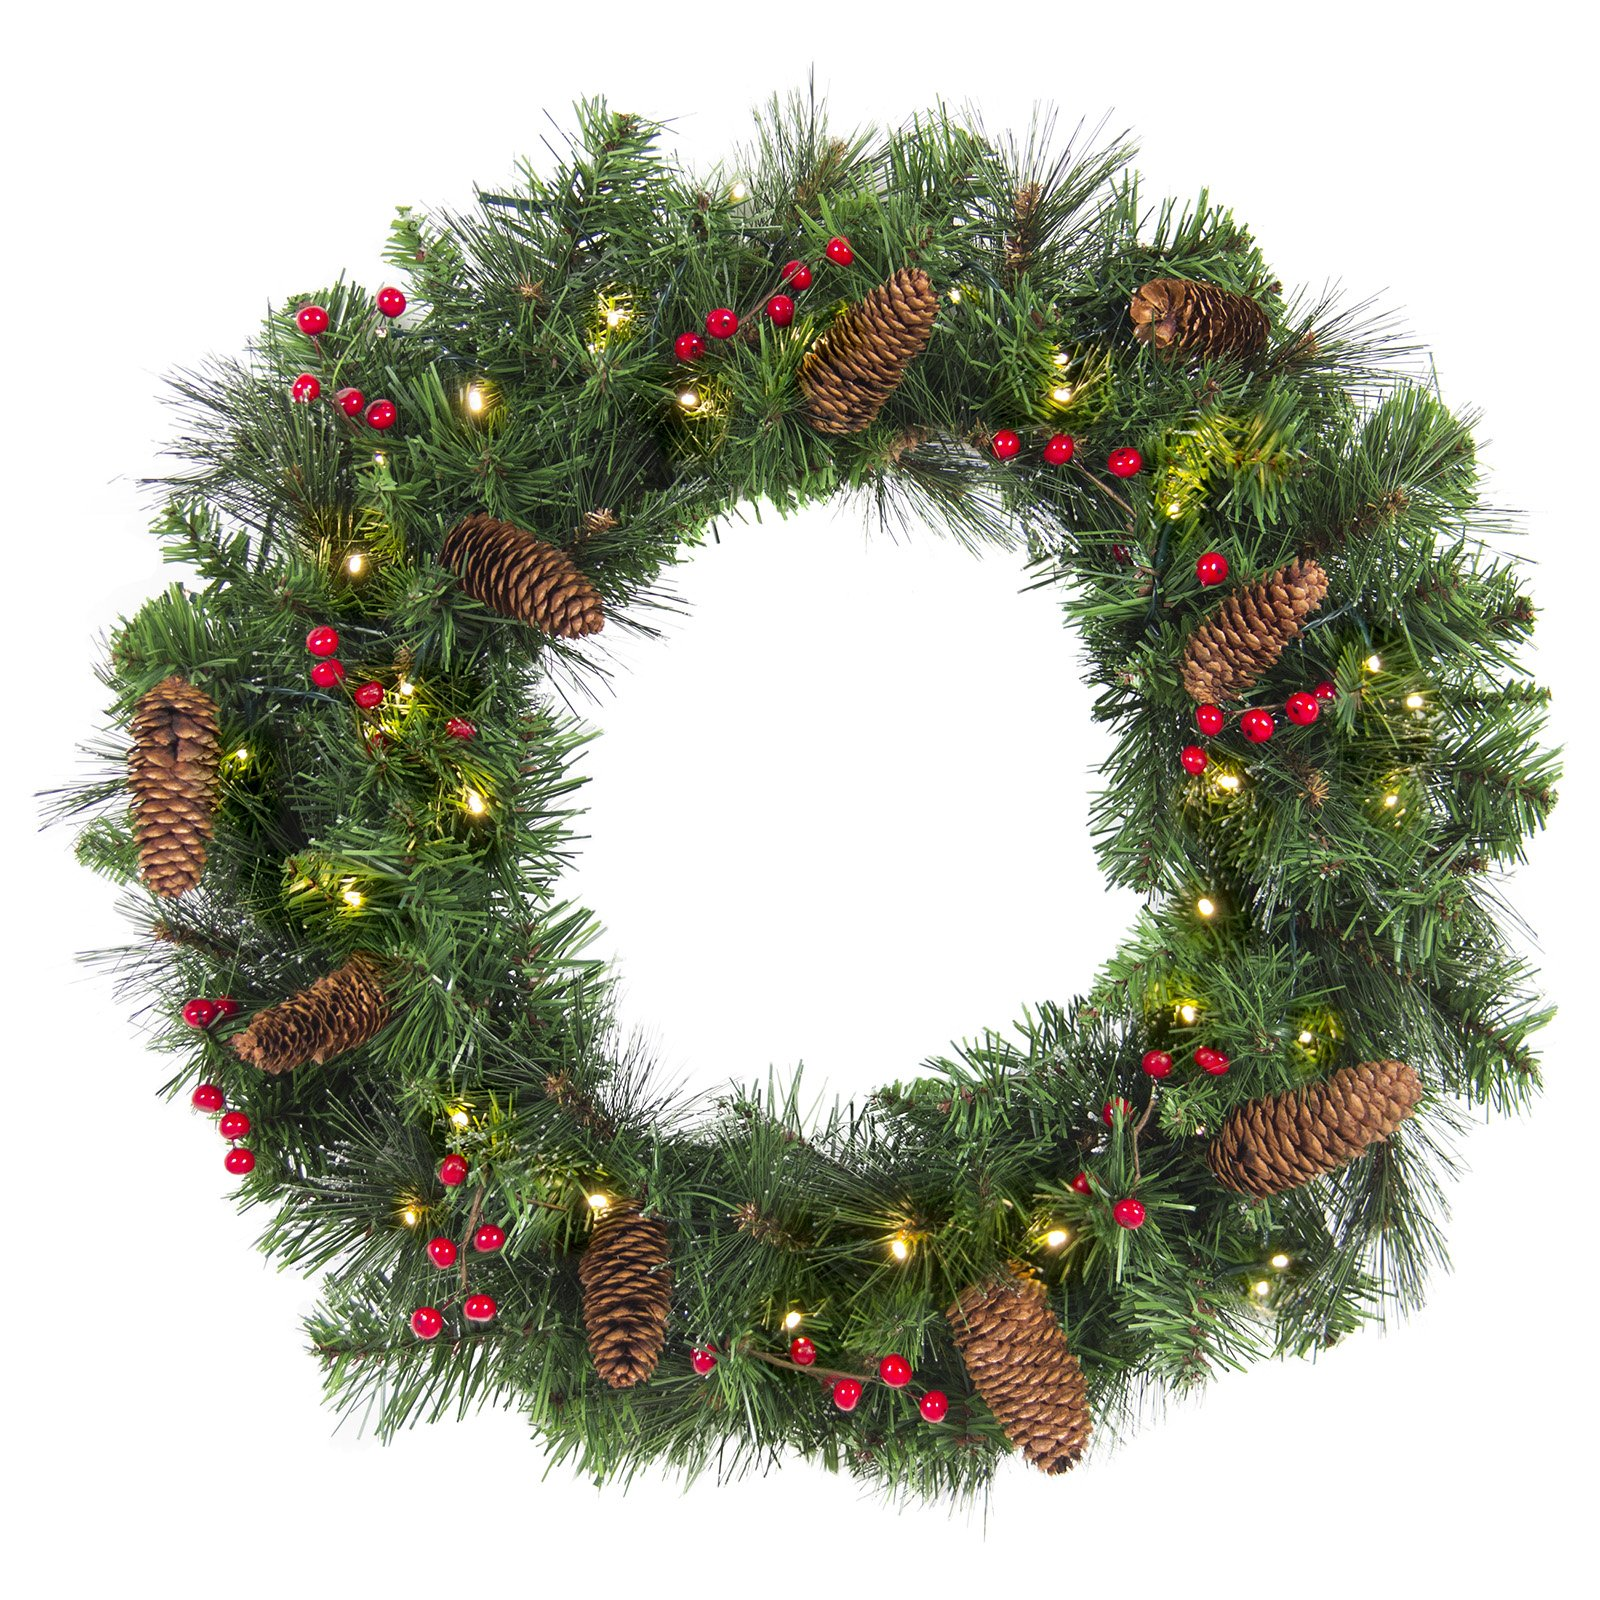 Best Choice Products 24in Pre-Lit Spruce Christmas Wreath w/ 50 LED Lights, Silver Bristles, Pine Cones, Berries - Green